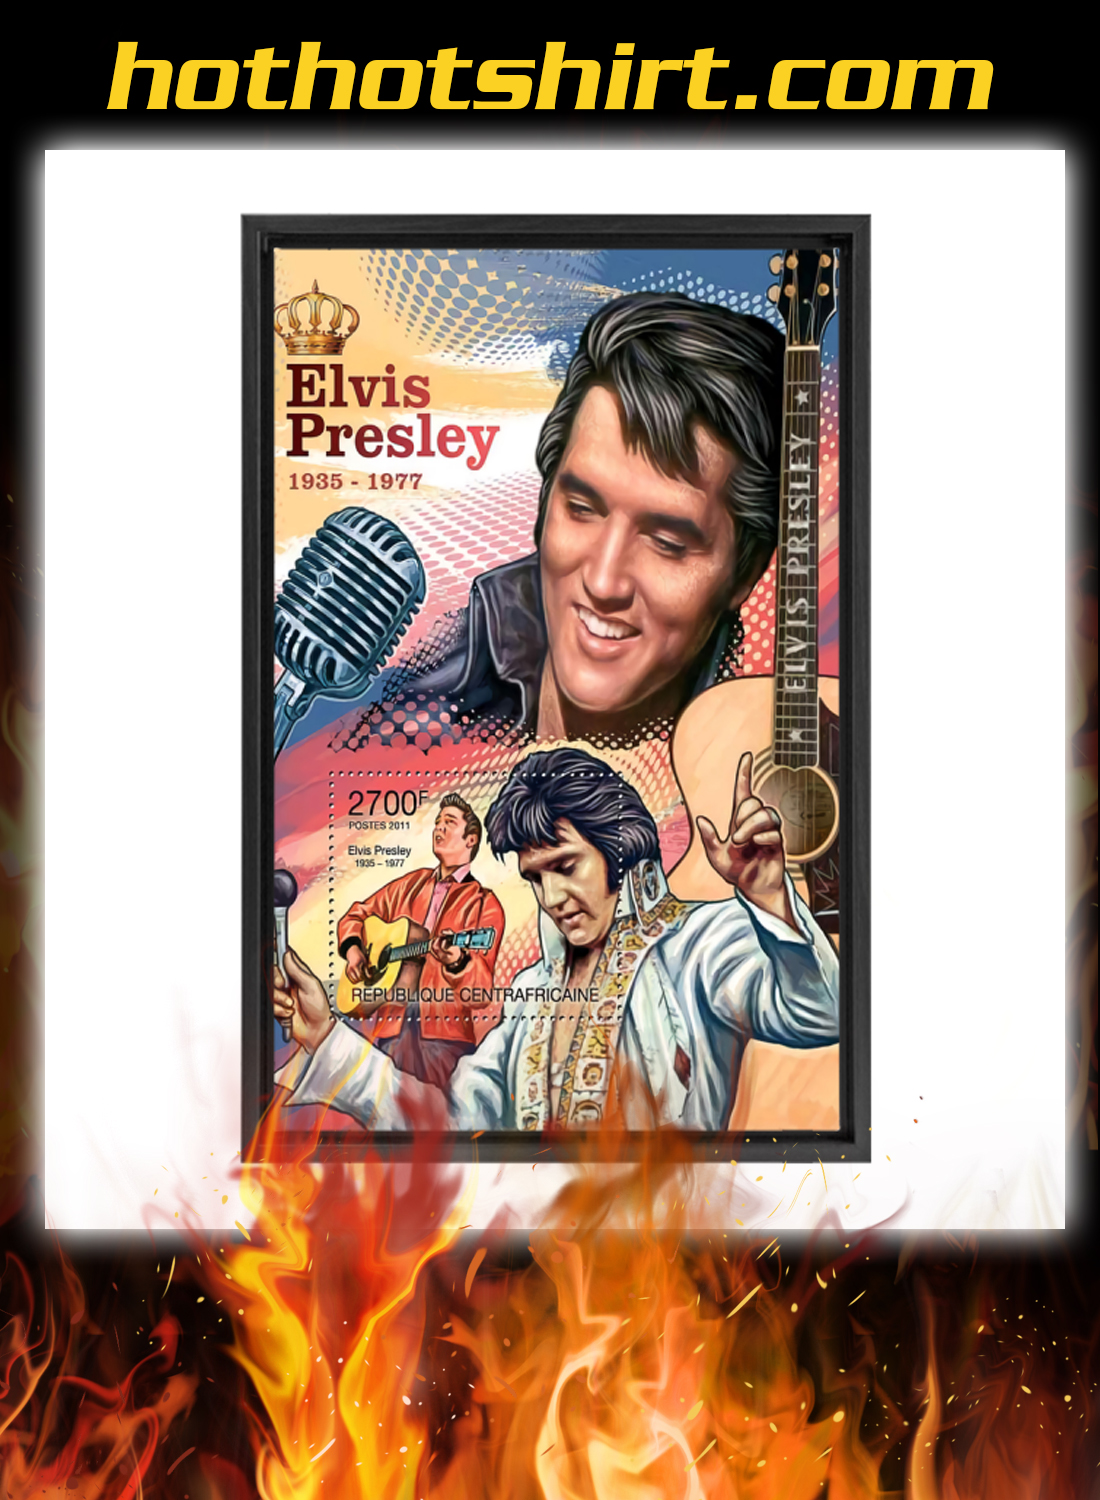 Elvis presley 1935 1977 poster and canvas prints 2